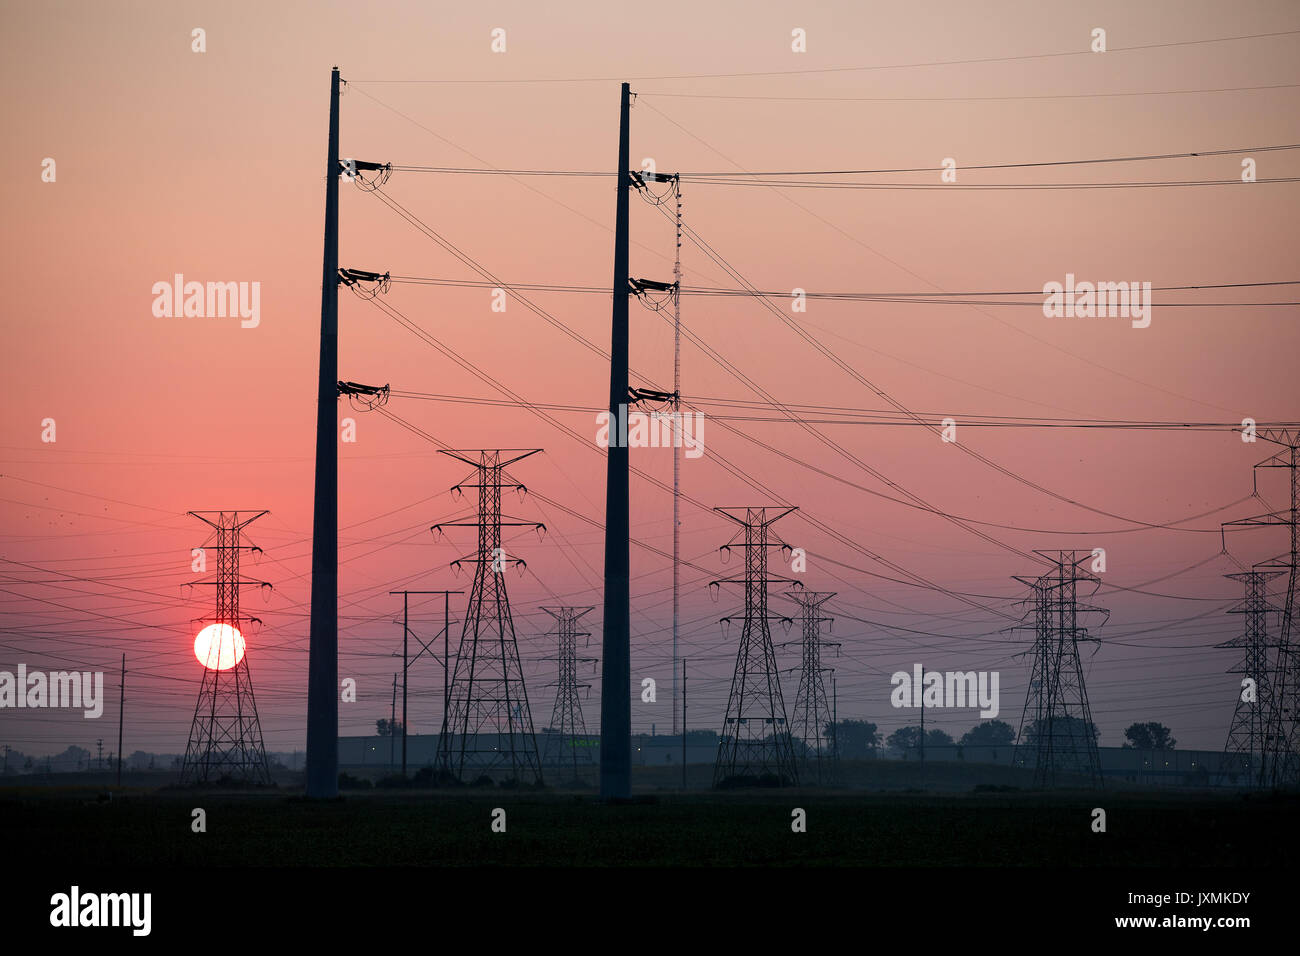 Electric power lines at sunrise - Stock Image